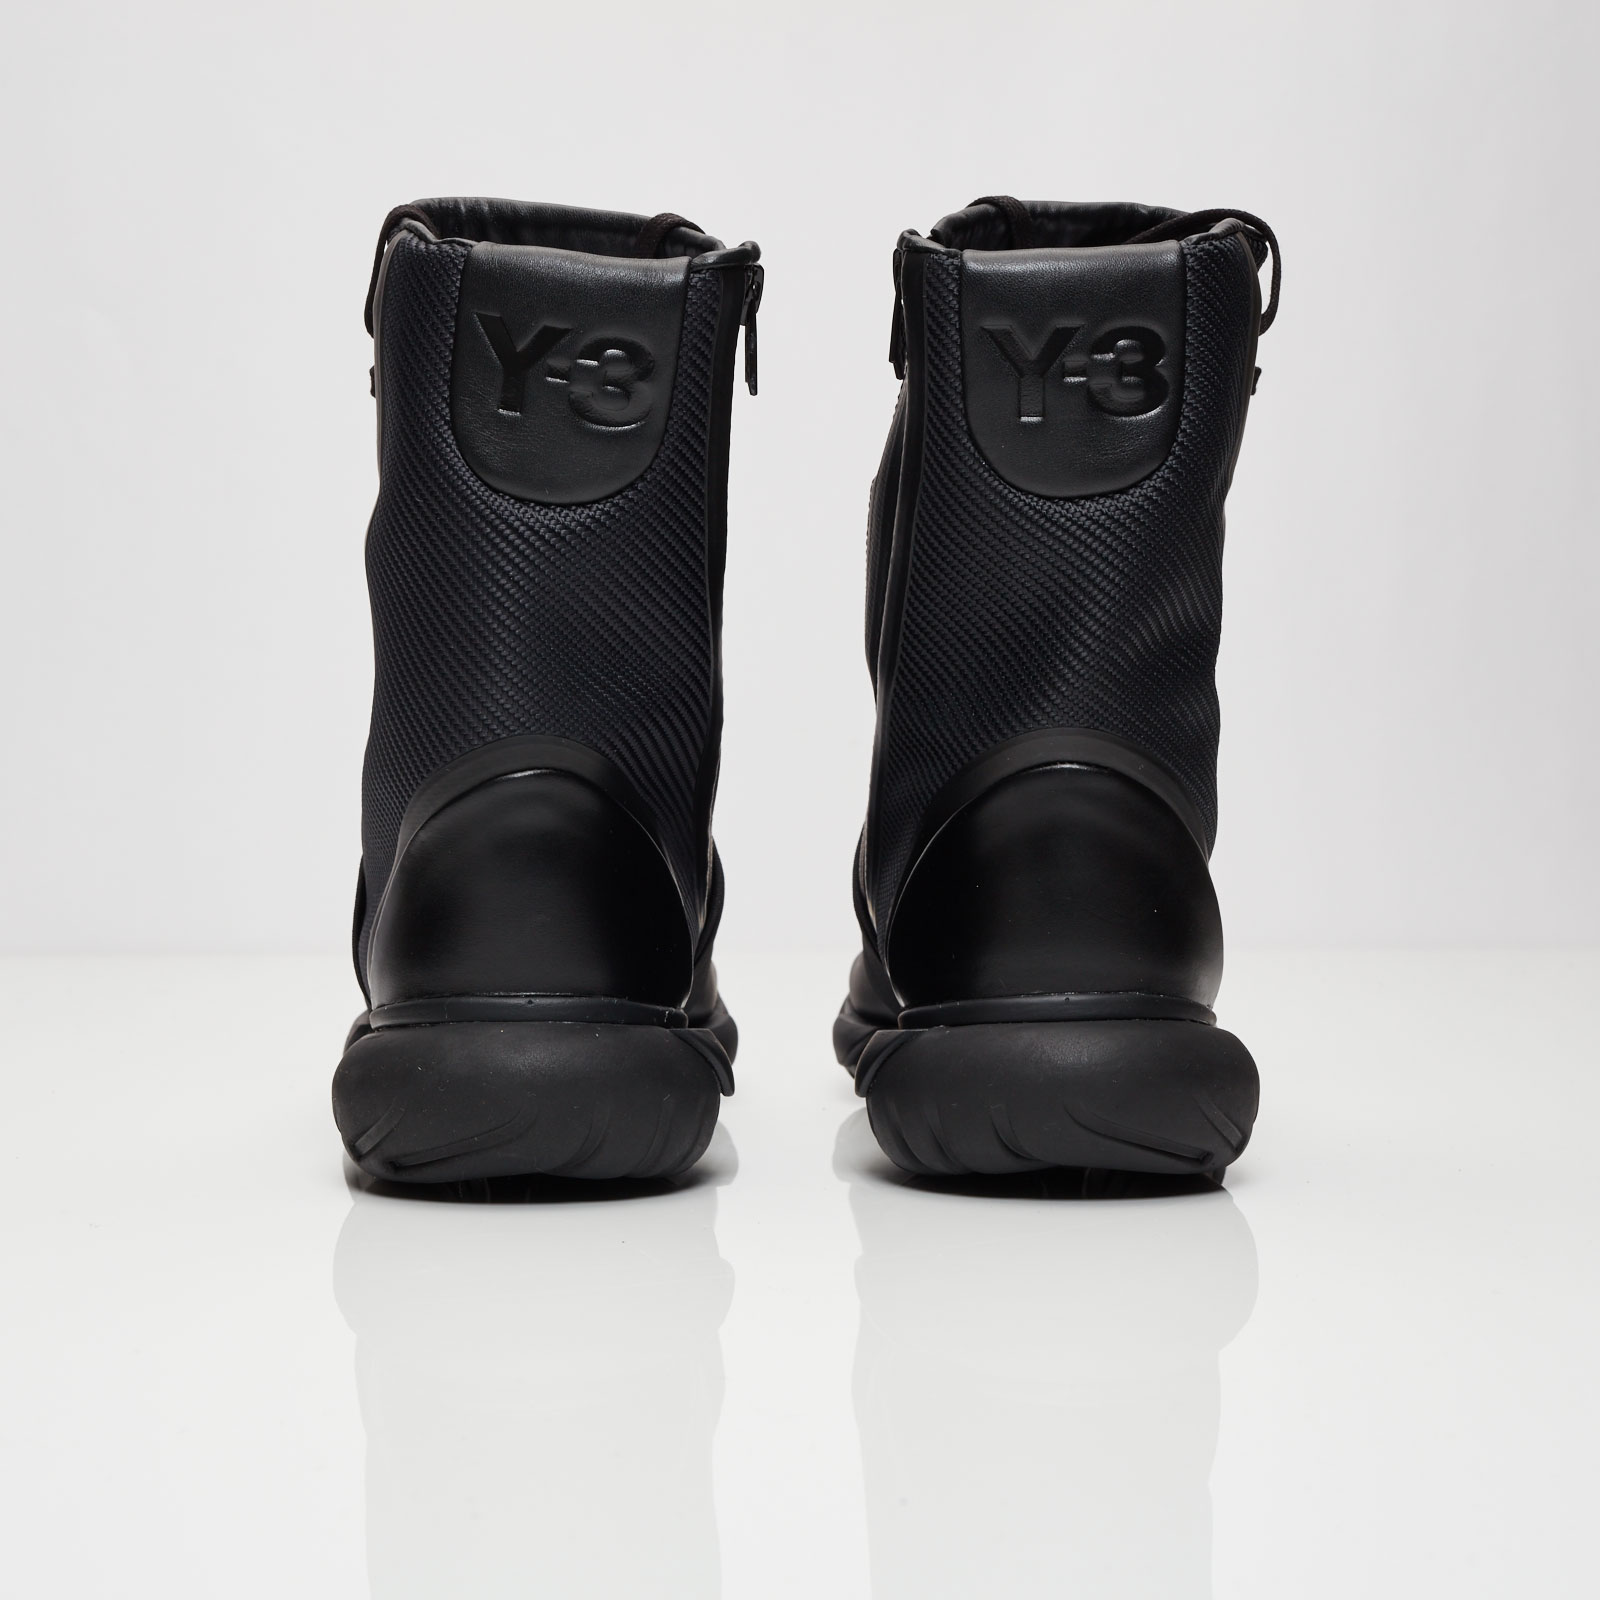 8588c8959be adidas Y-3 Qasa Boot - Bb4802 - Sneakersnstuff